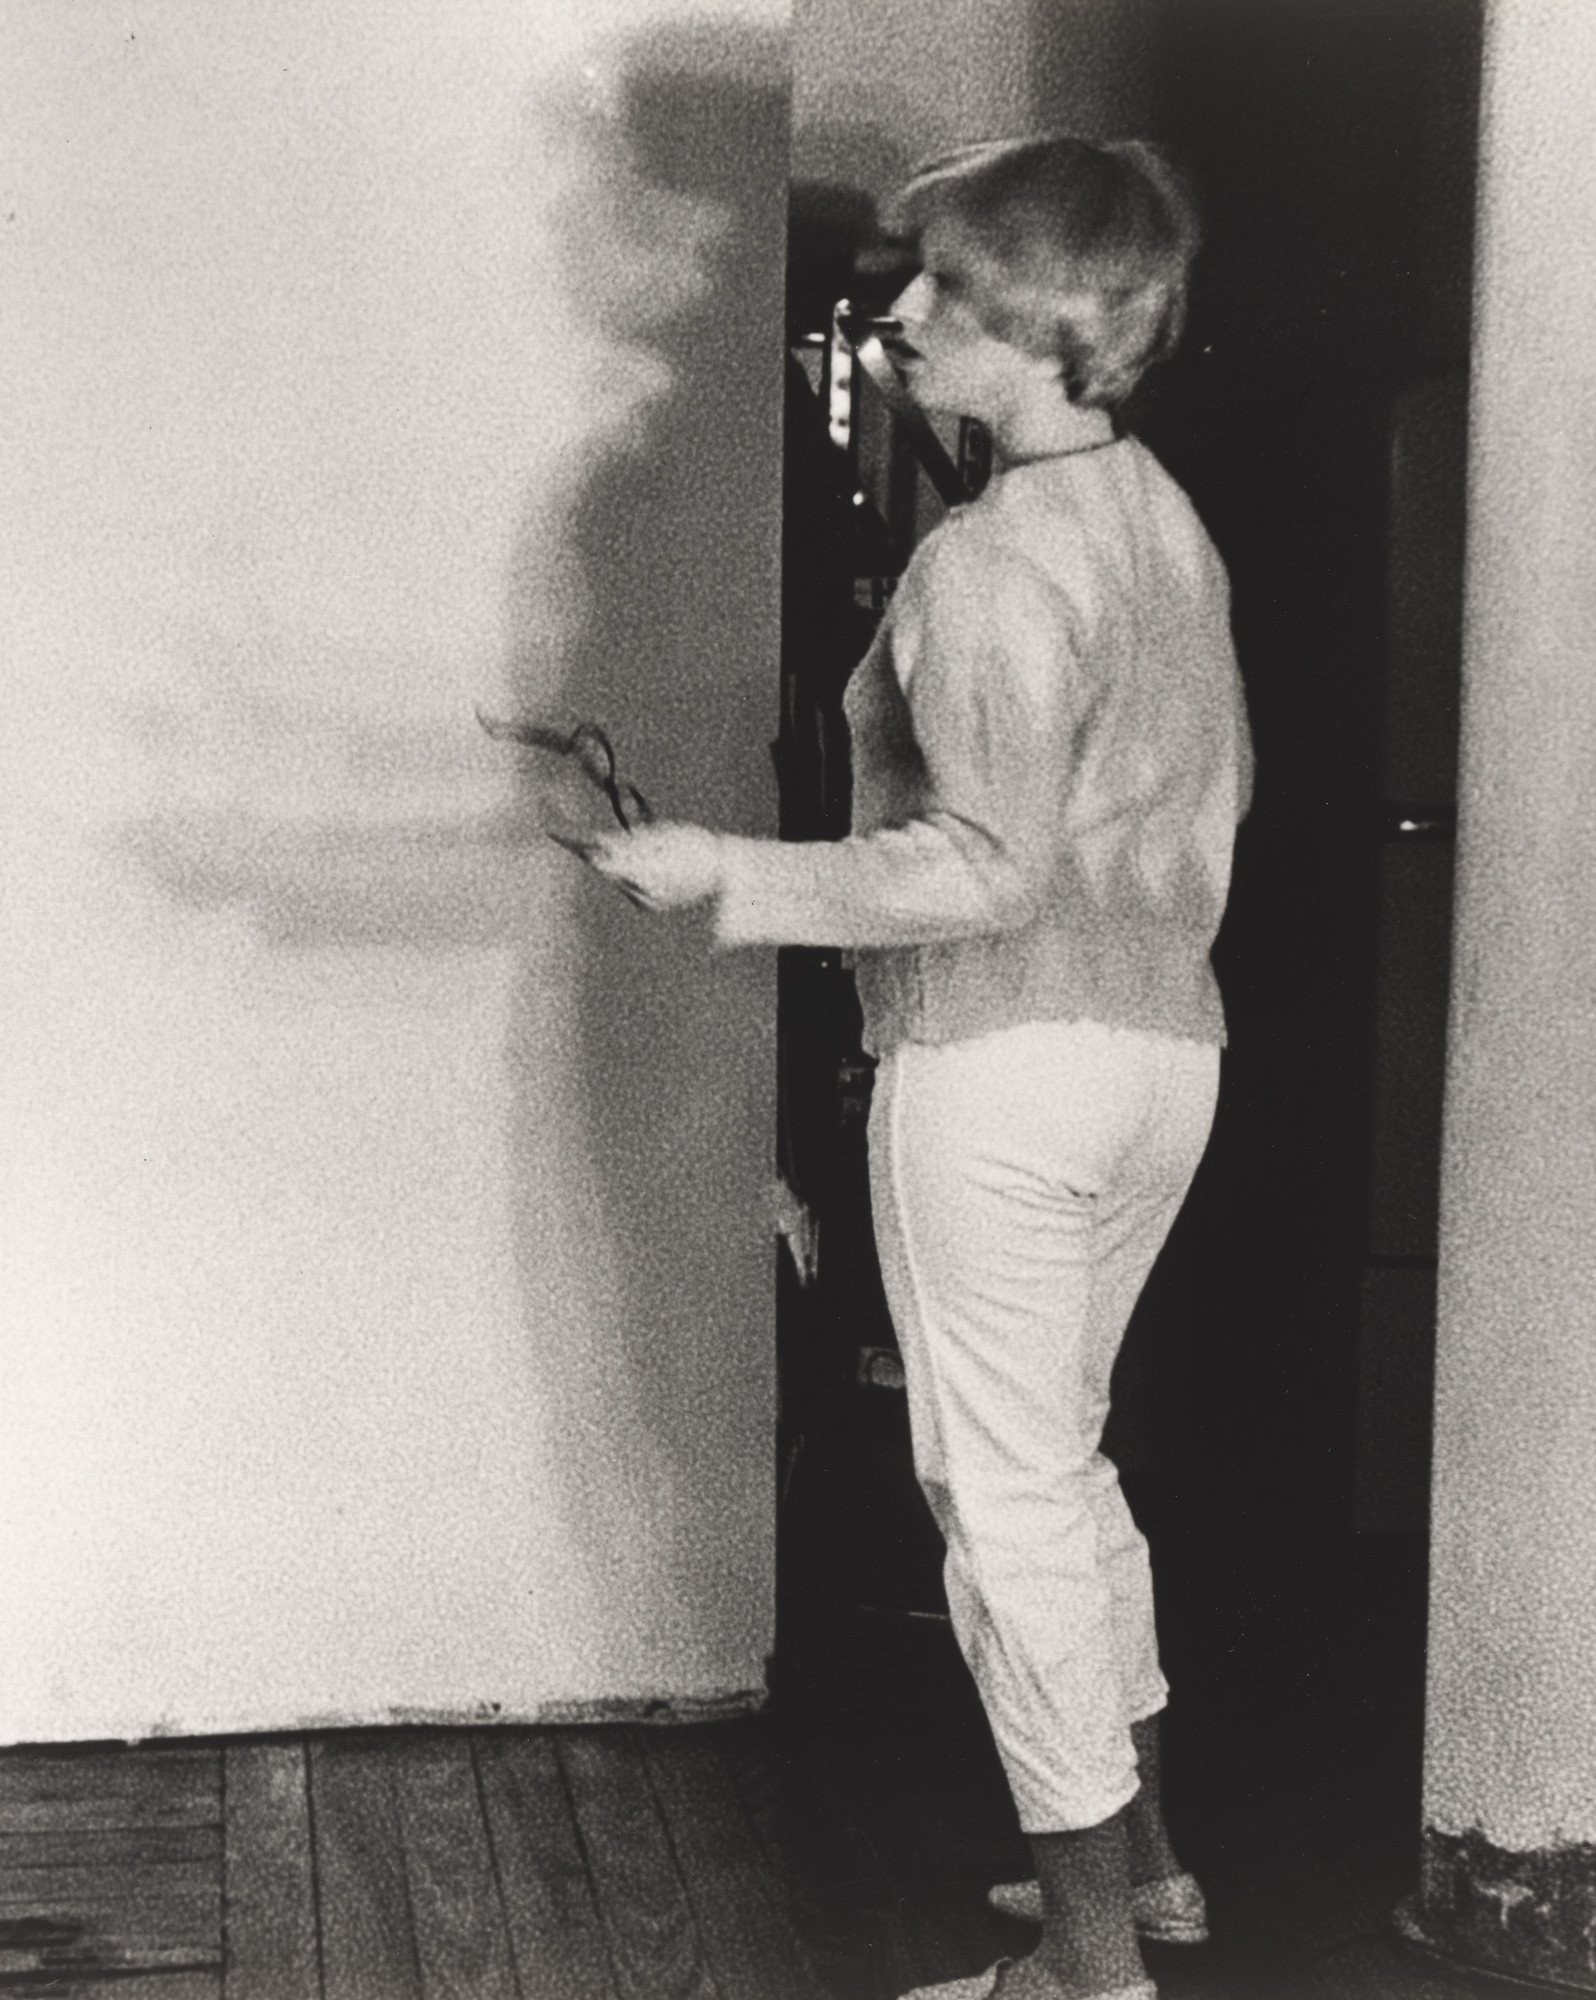 Cindy Sherman. Untitled Film Still #1. 1977